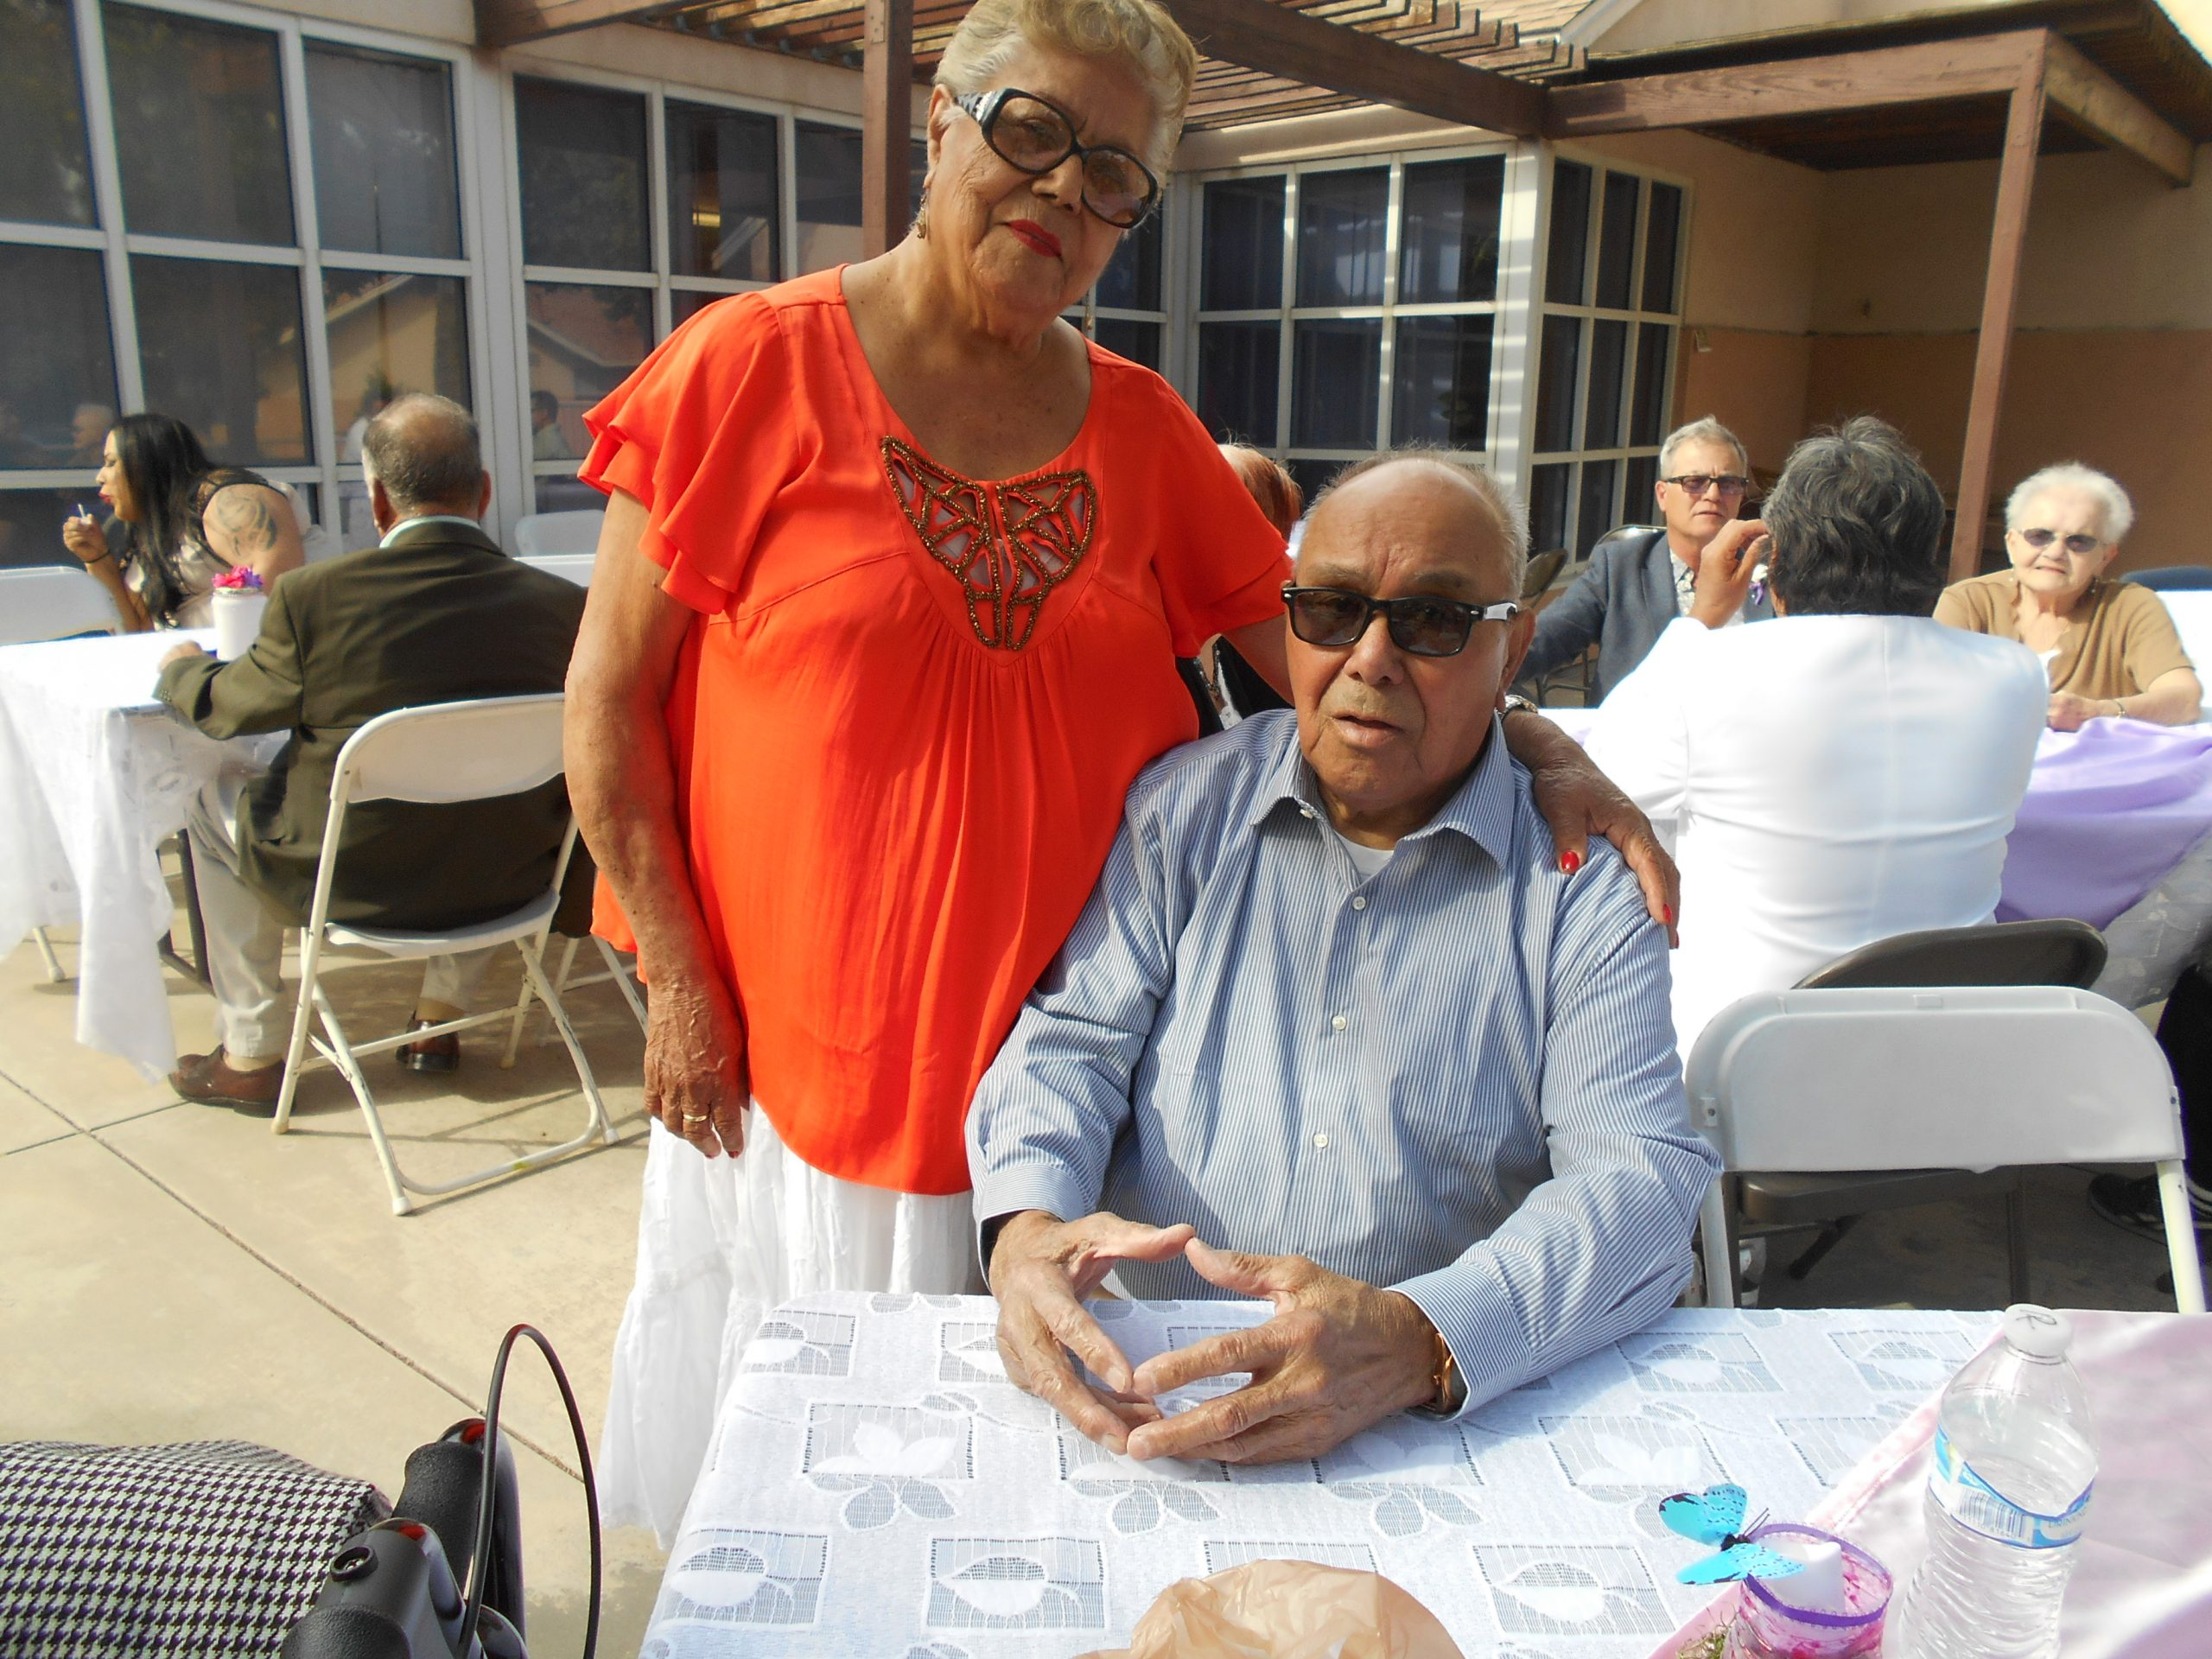 A man in a blue shirt and a woman in an orange shirt posing for a picture from behind a table at Cambridge Gardens senior housing community.